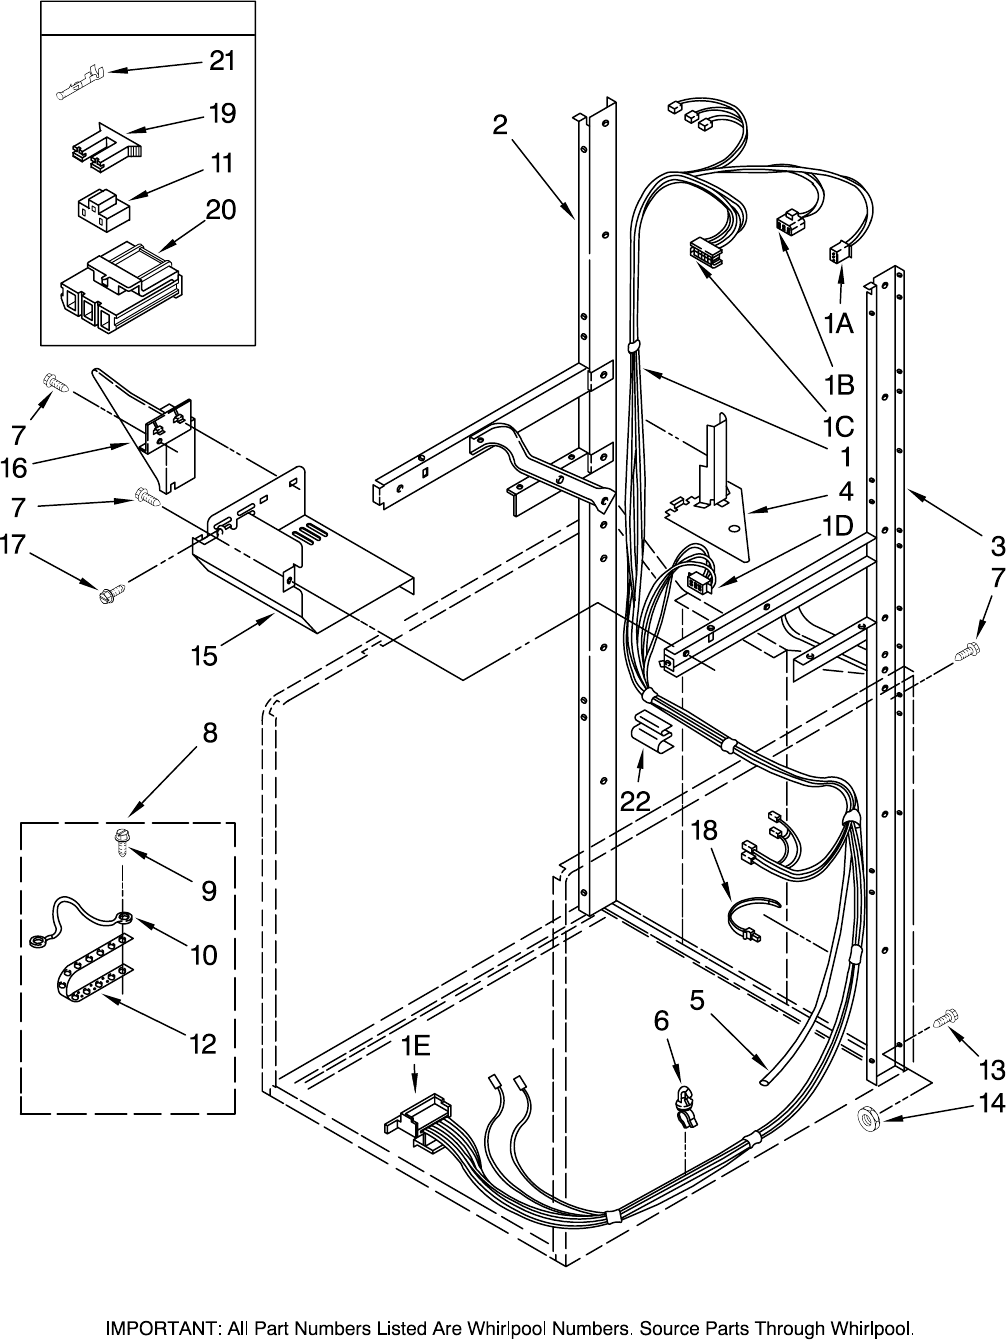 Page 7 of Maytag Washer/Dryer MET3800TW1 User Guide